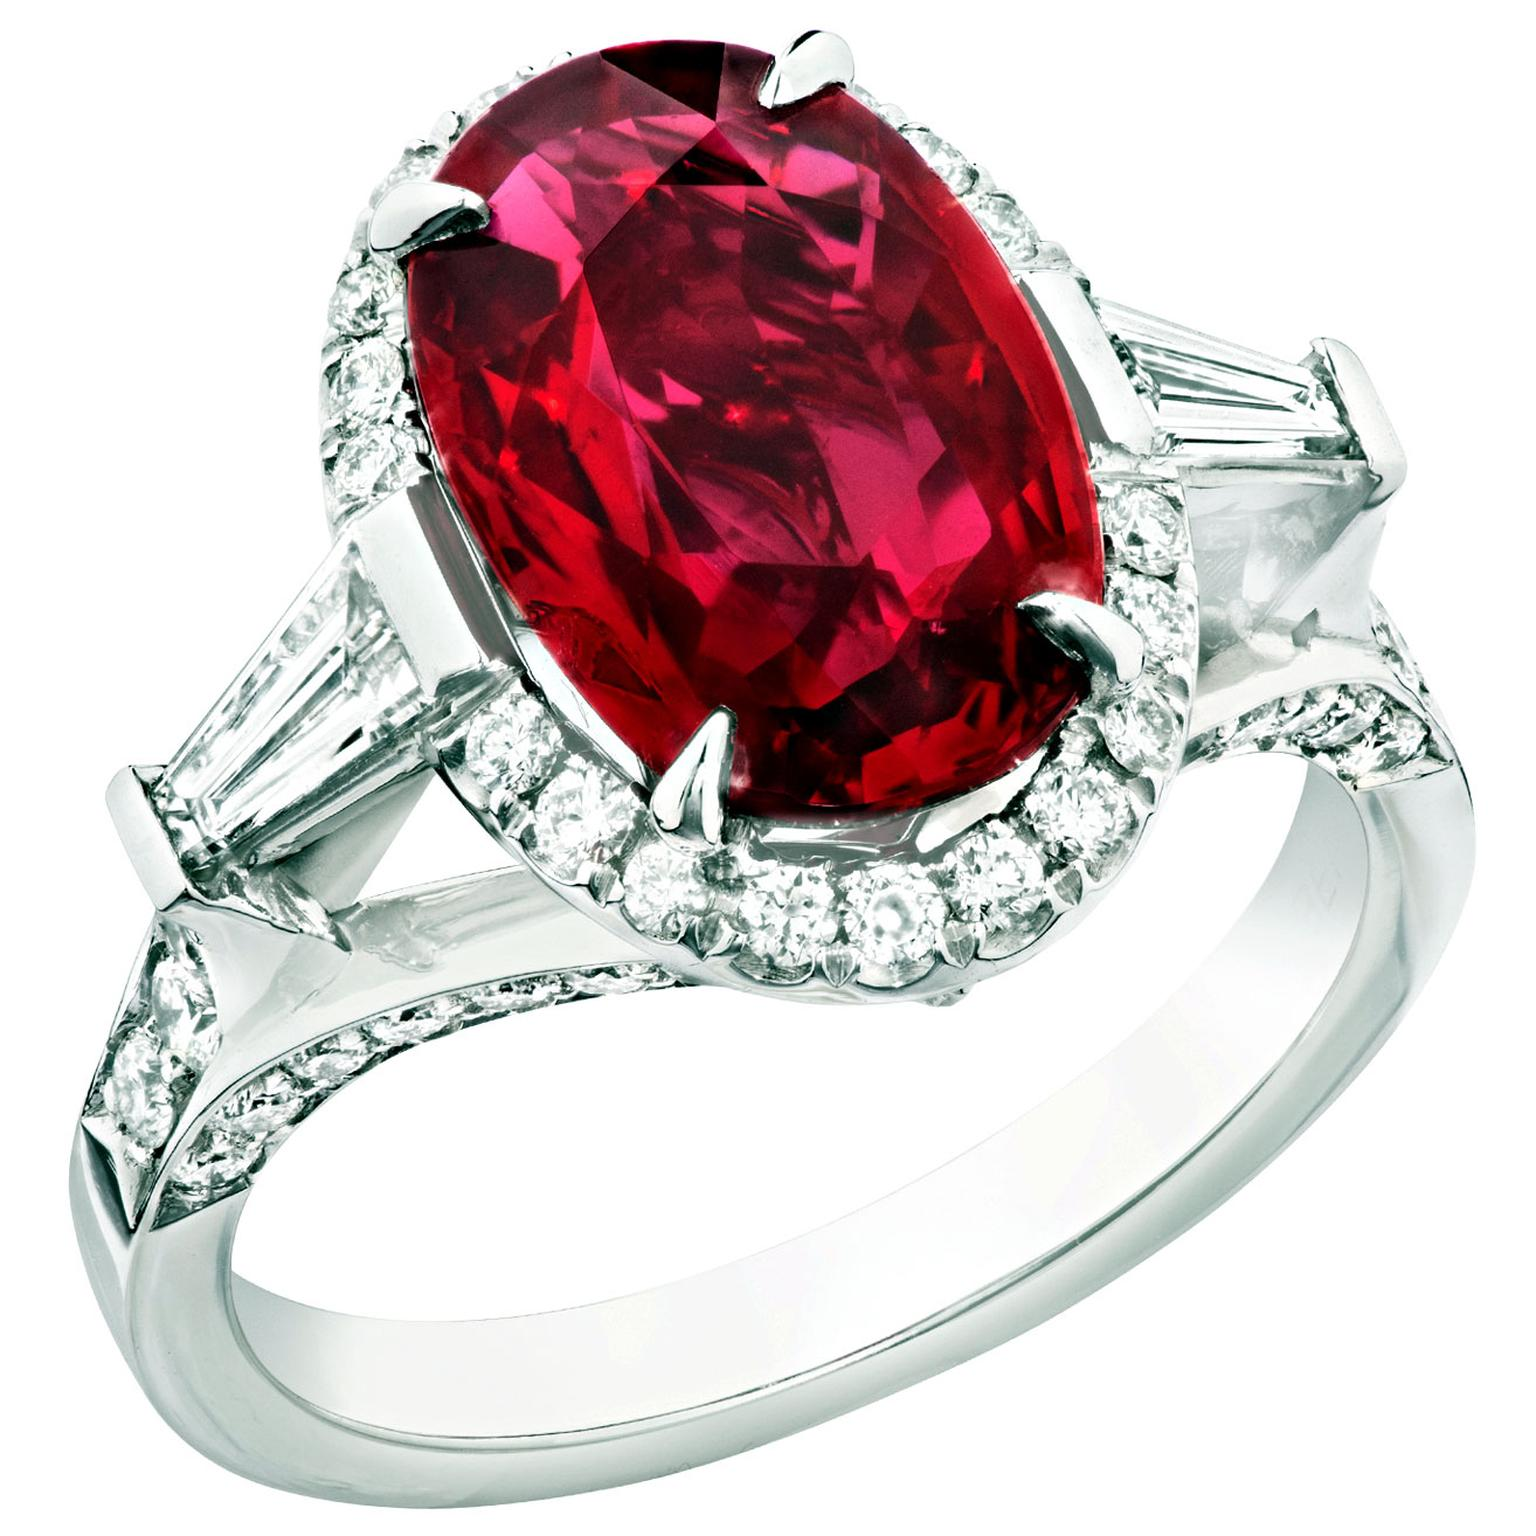 Fabergé oval-cut ruby ring